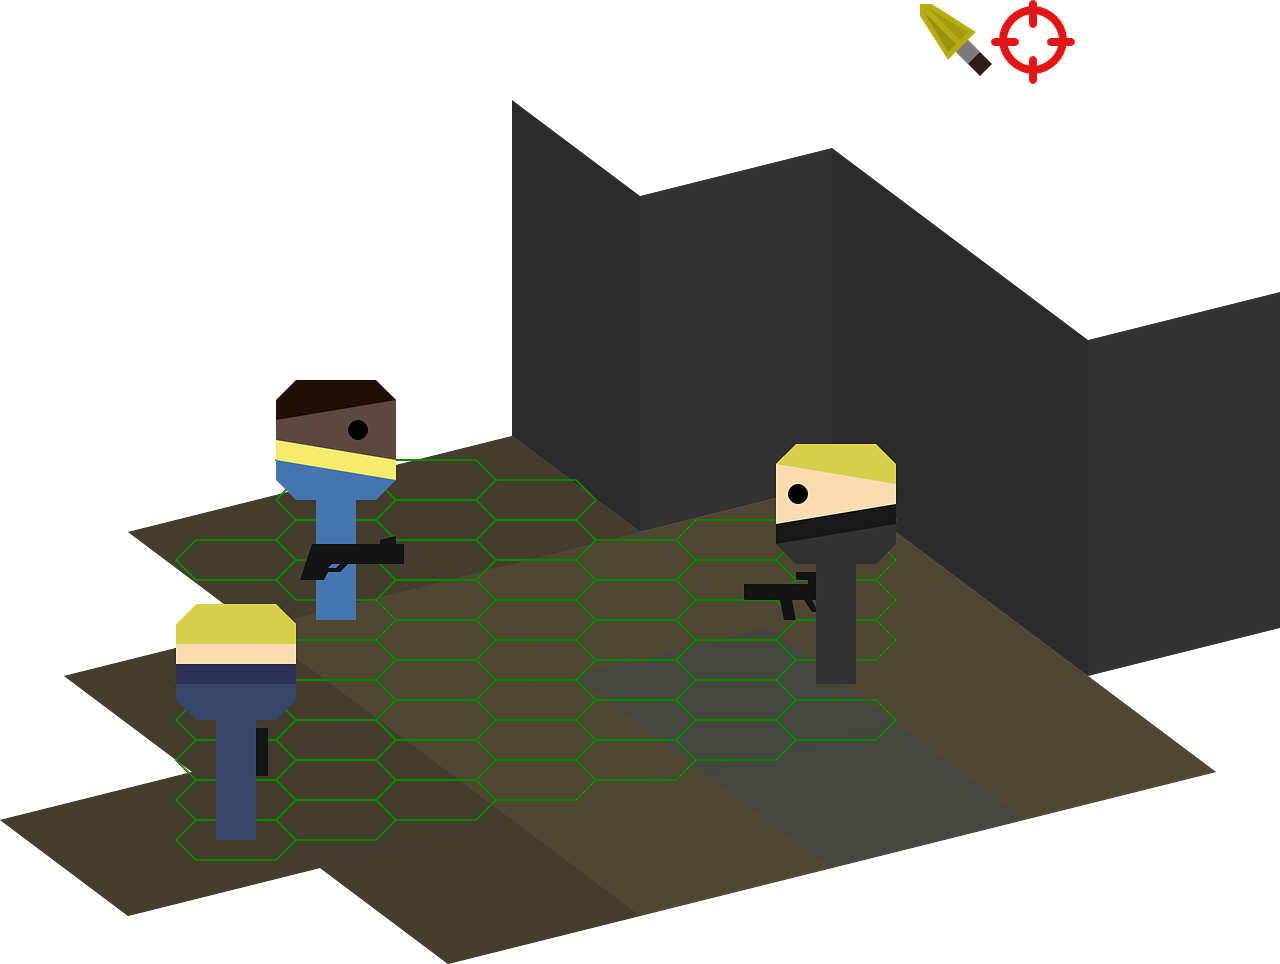 videogame-37387_1280.png